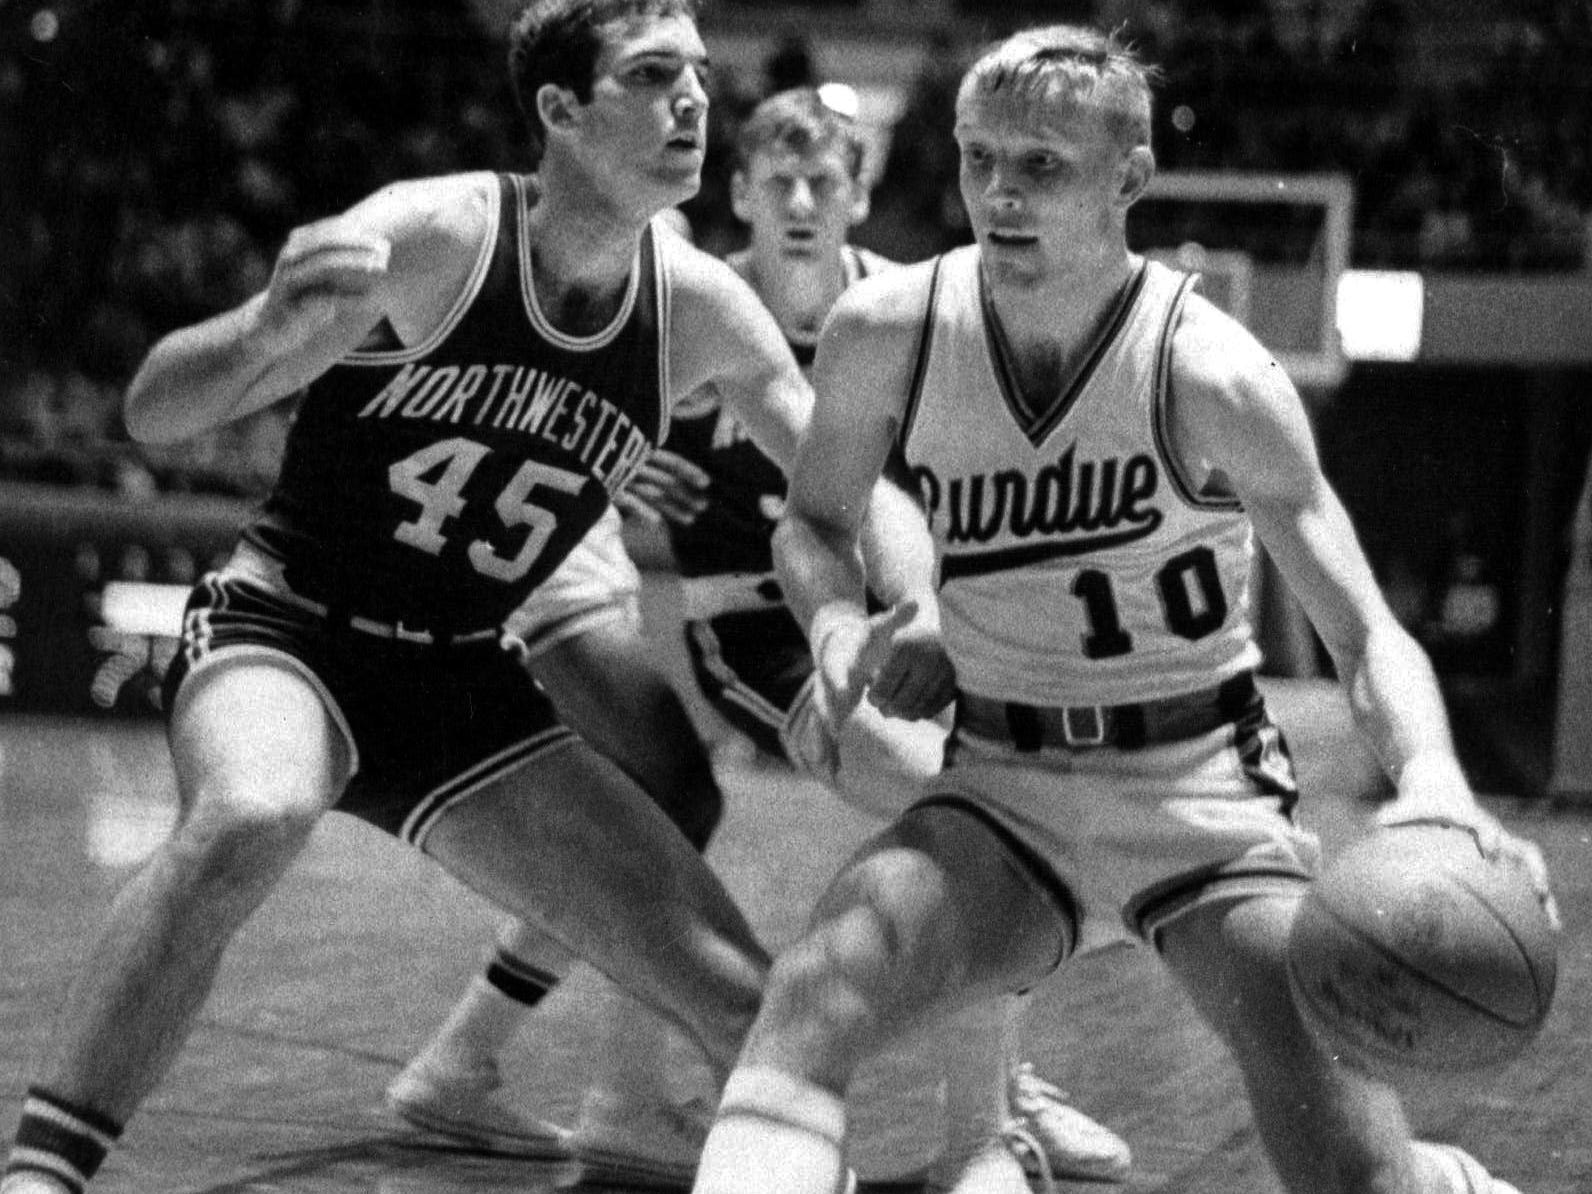 Rick Mount Purdue's high scoring sophomore cuts to the basket around Northwestern's Mike Weaver in Feb. 51968 Big 10 battle at Lafayette Ind. Mount scored 30 points as Purdue won 98-89 knocking the Wildcats from first place. (AP photo/s)